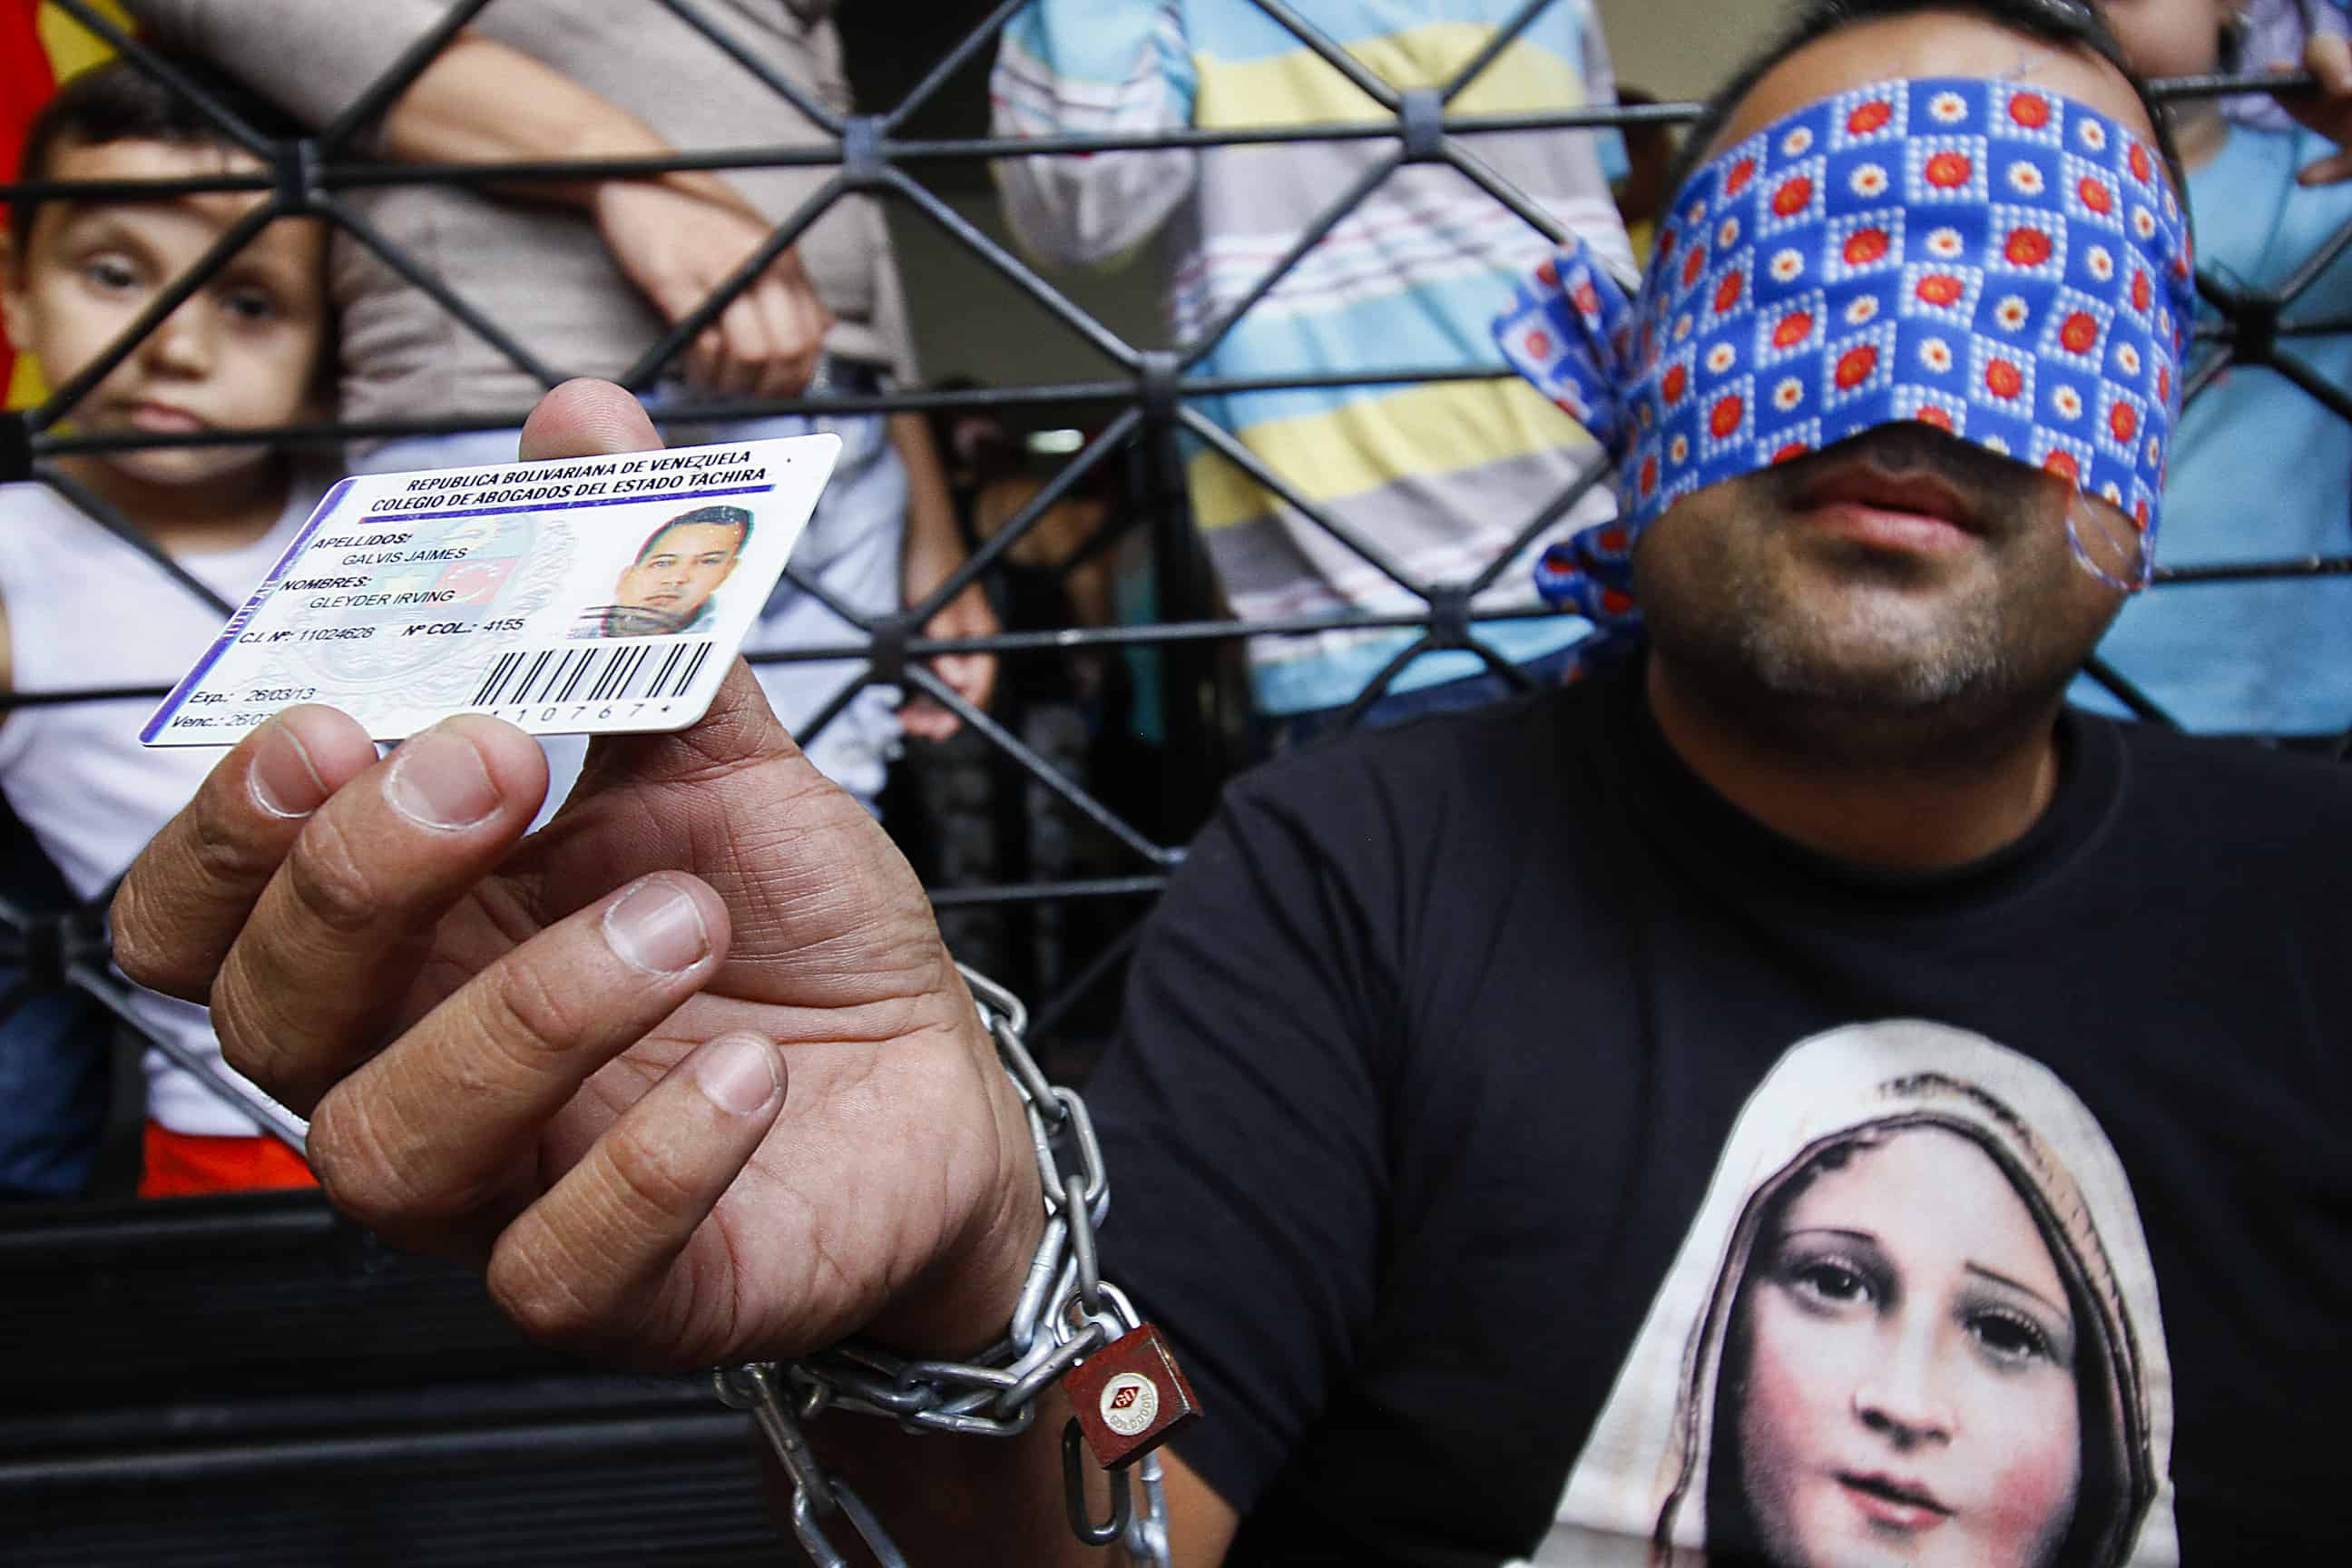 Venezuelan citizen Gleyder Irving Galvis Jaimes remains chained in front of the Colombia Immigration Office .